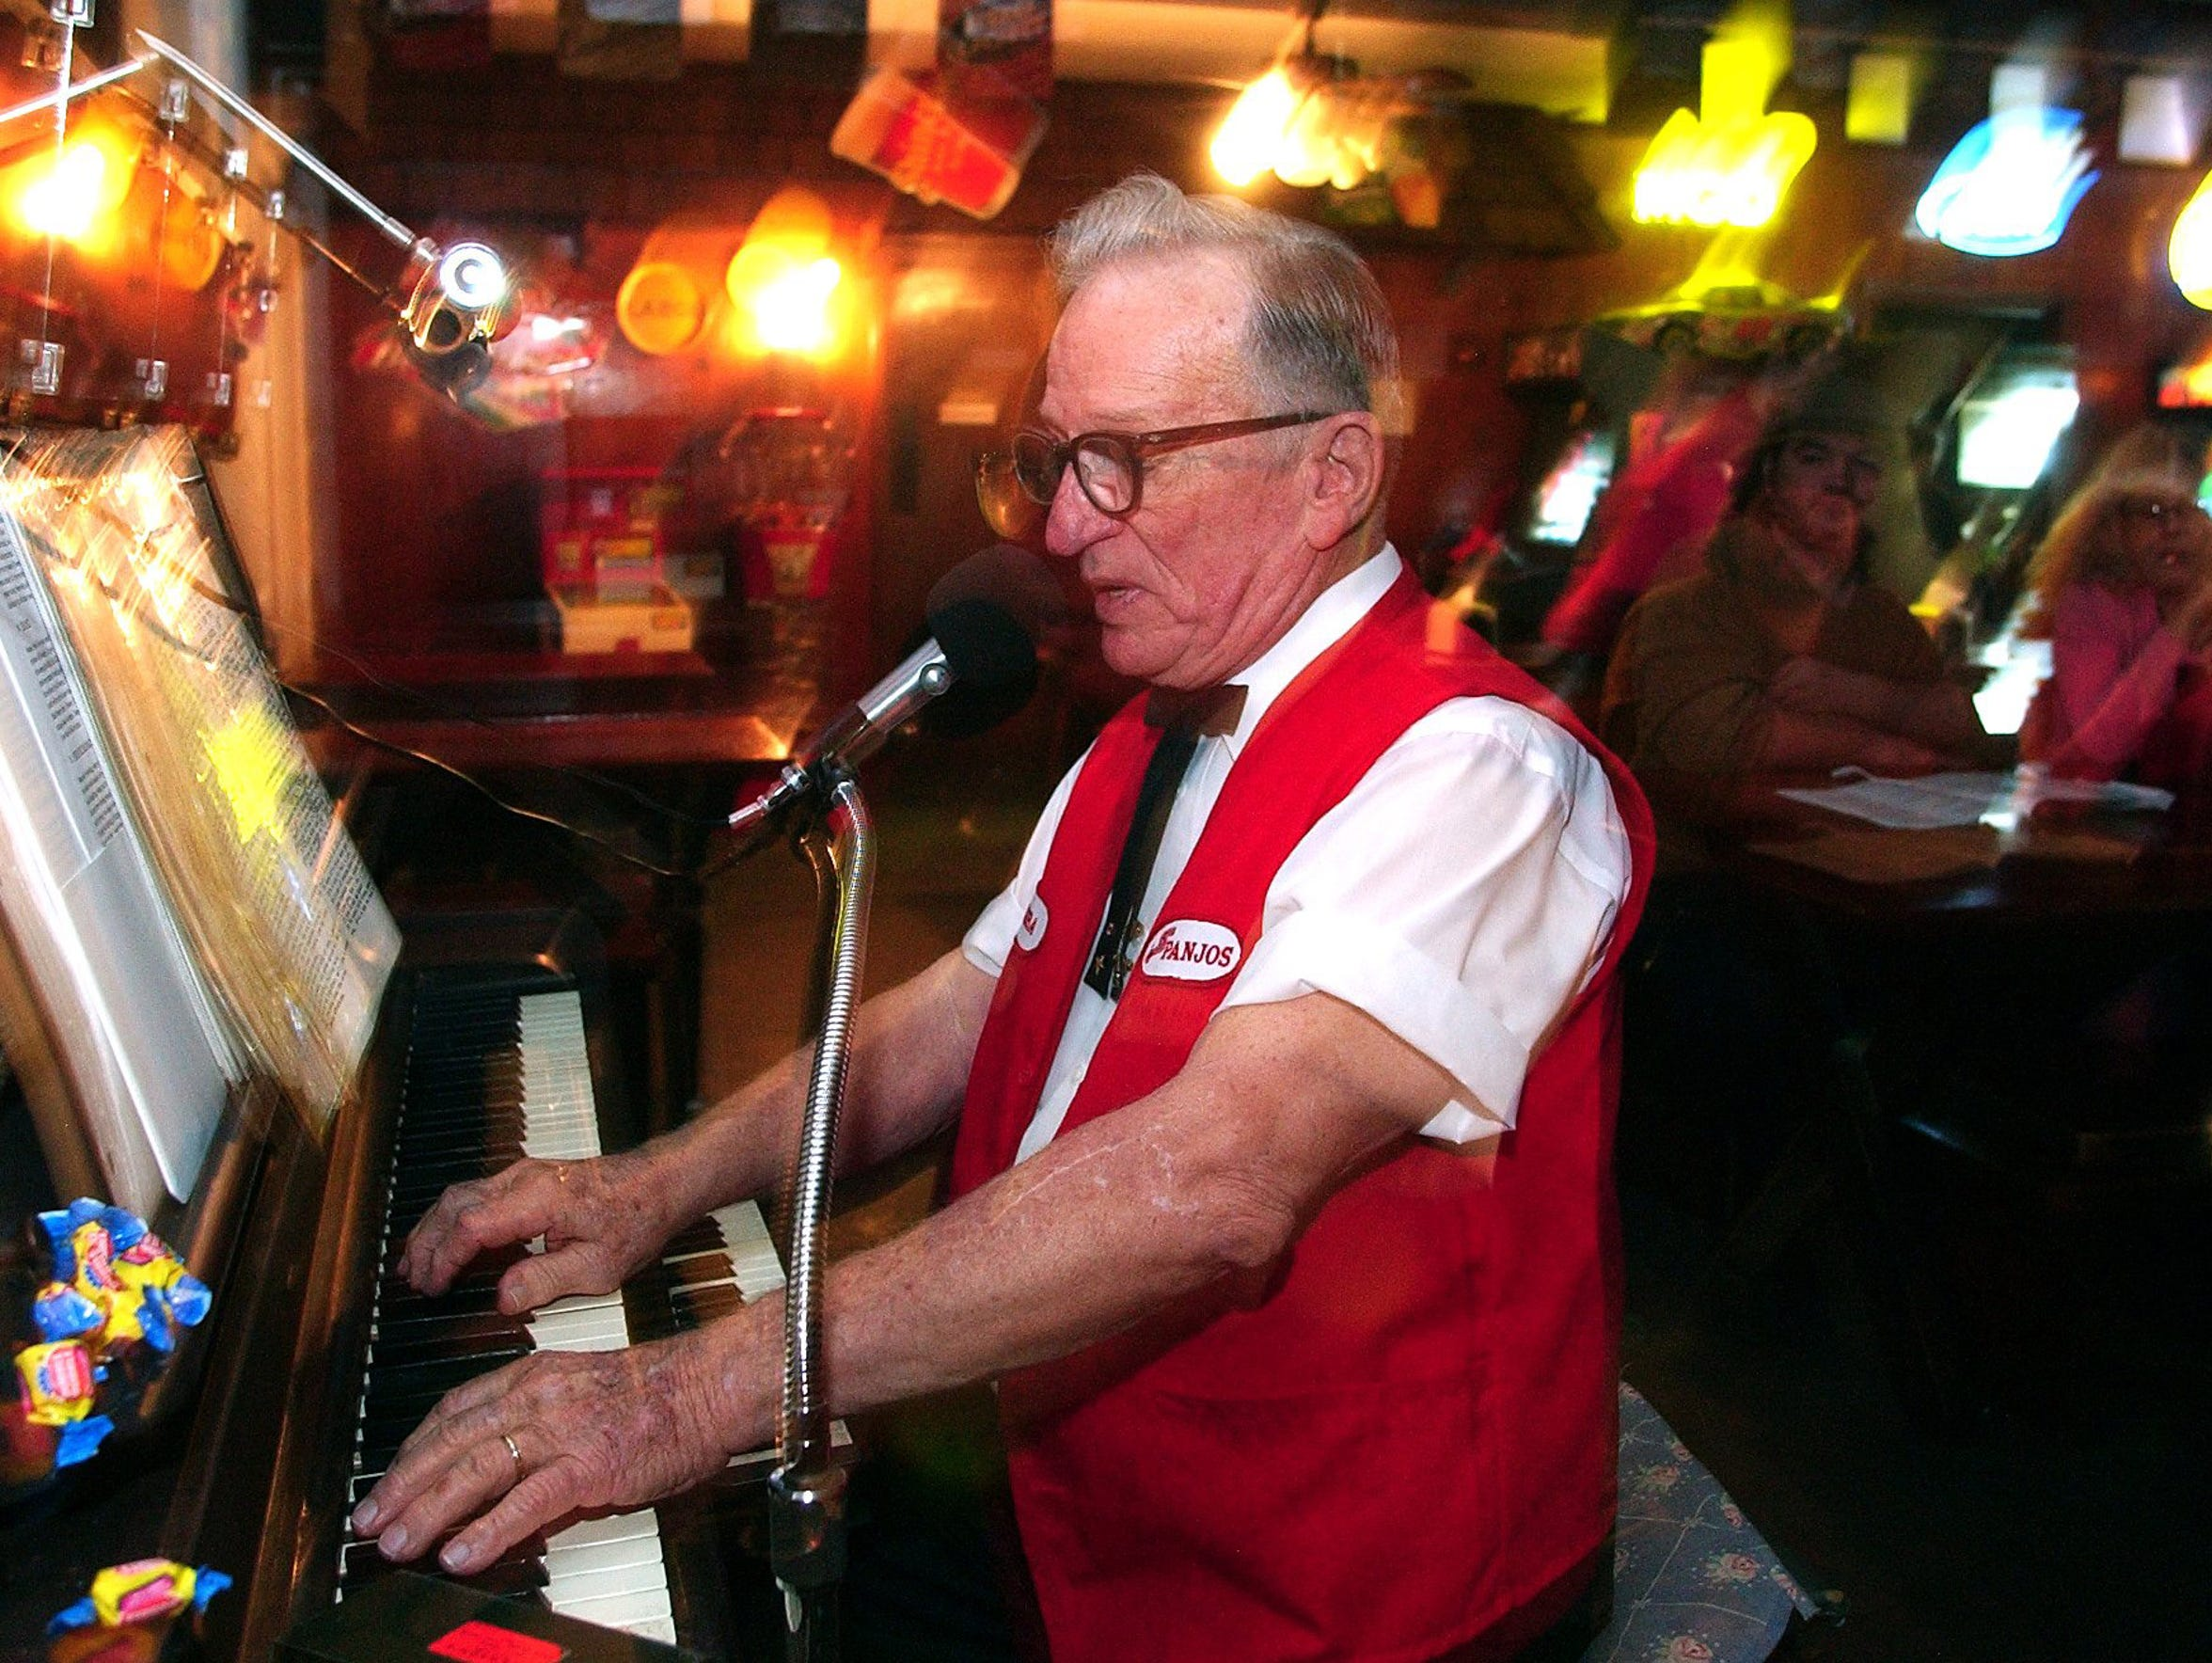 Bubba Jacob plays piano at Panjo's Pizza in February